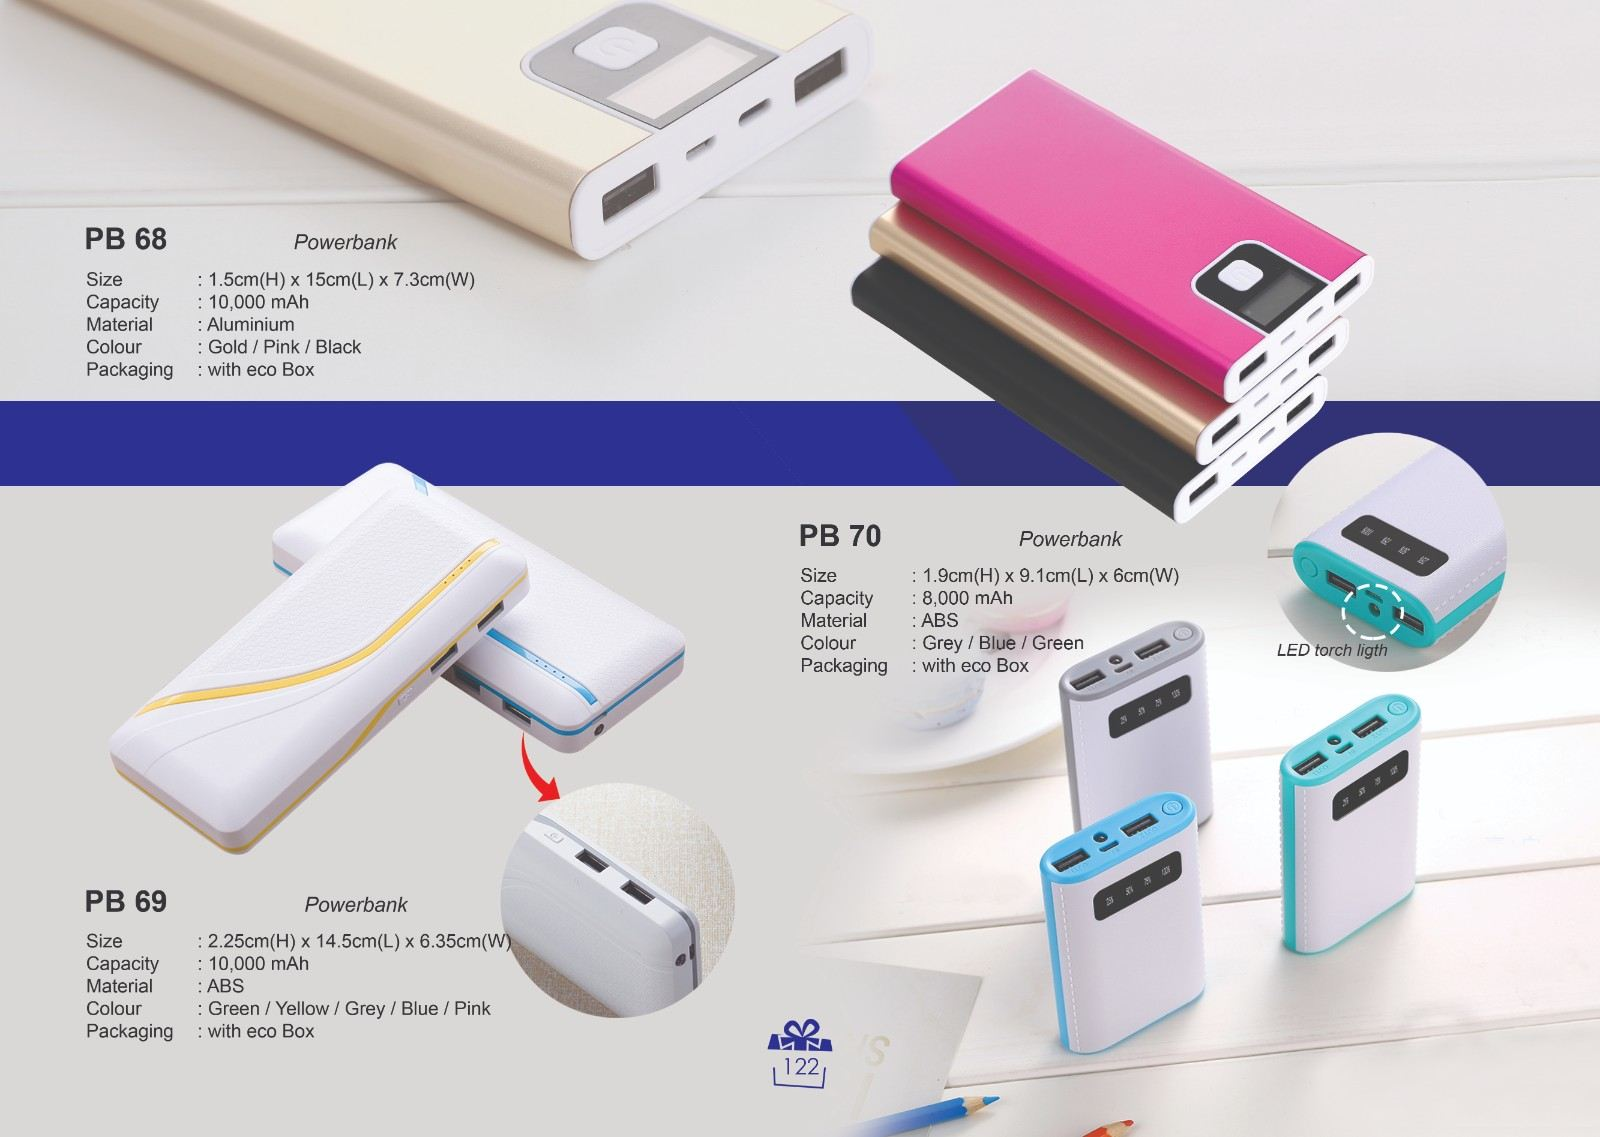 PB 68, PB 69 & PB 70 Powerbank